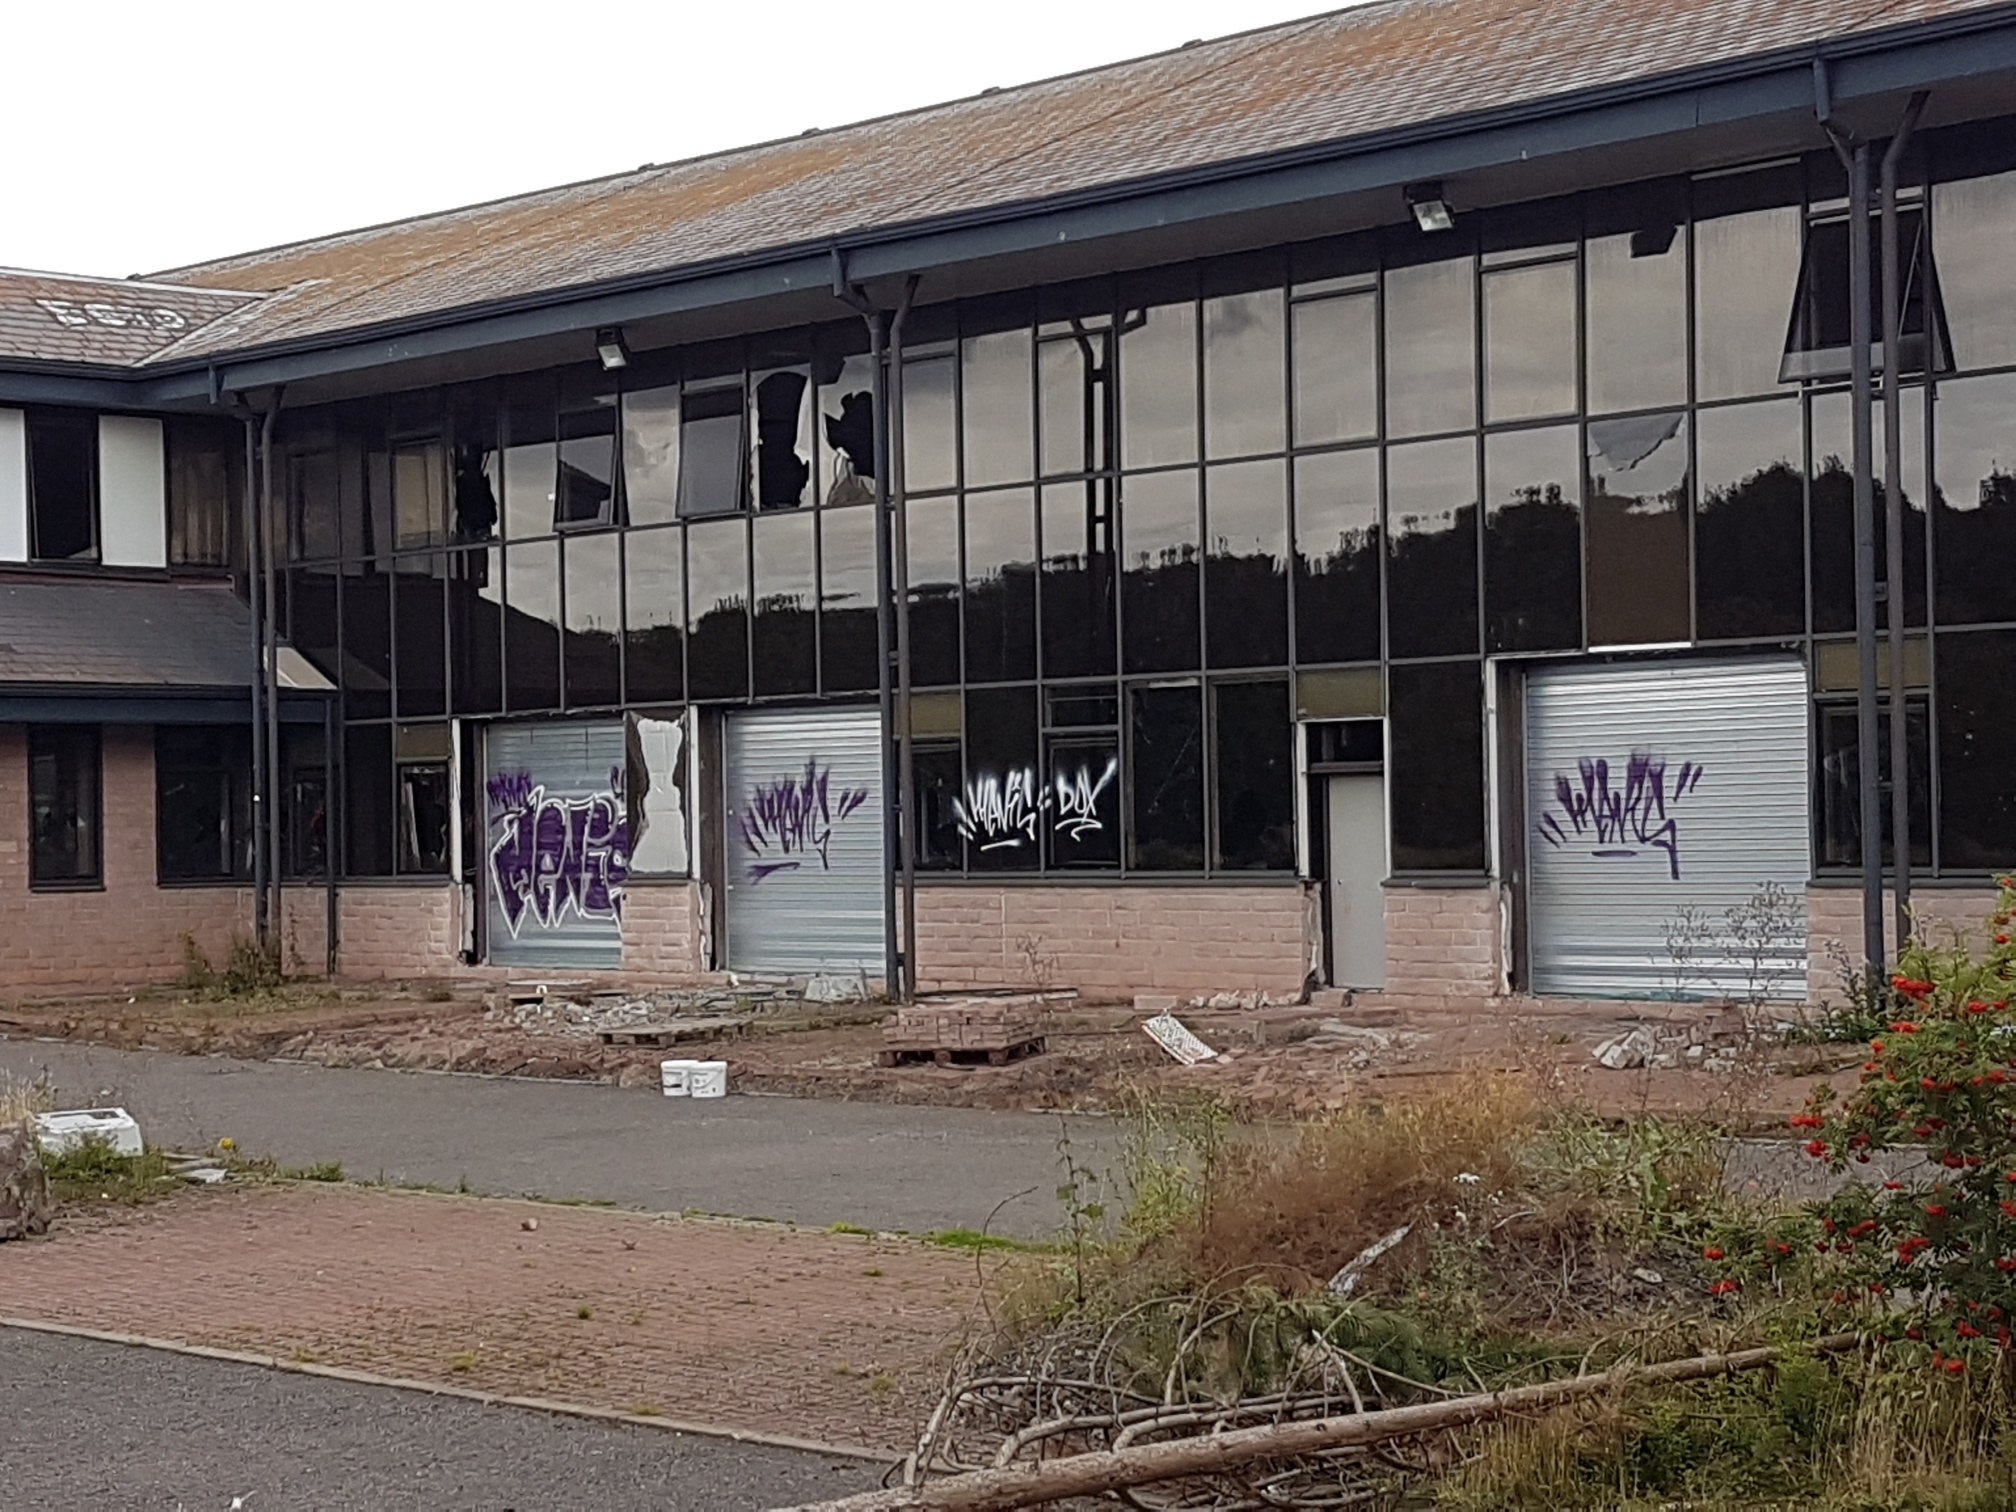 The building's windows have been smashed and its shutters are covered in graffiti.